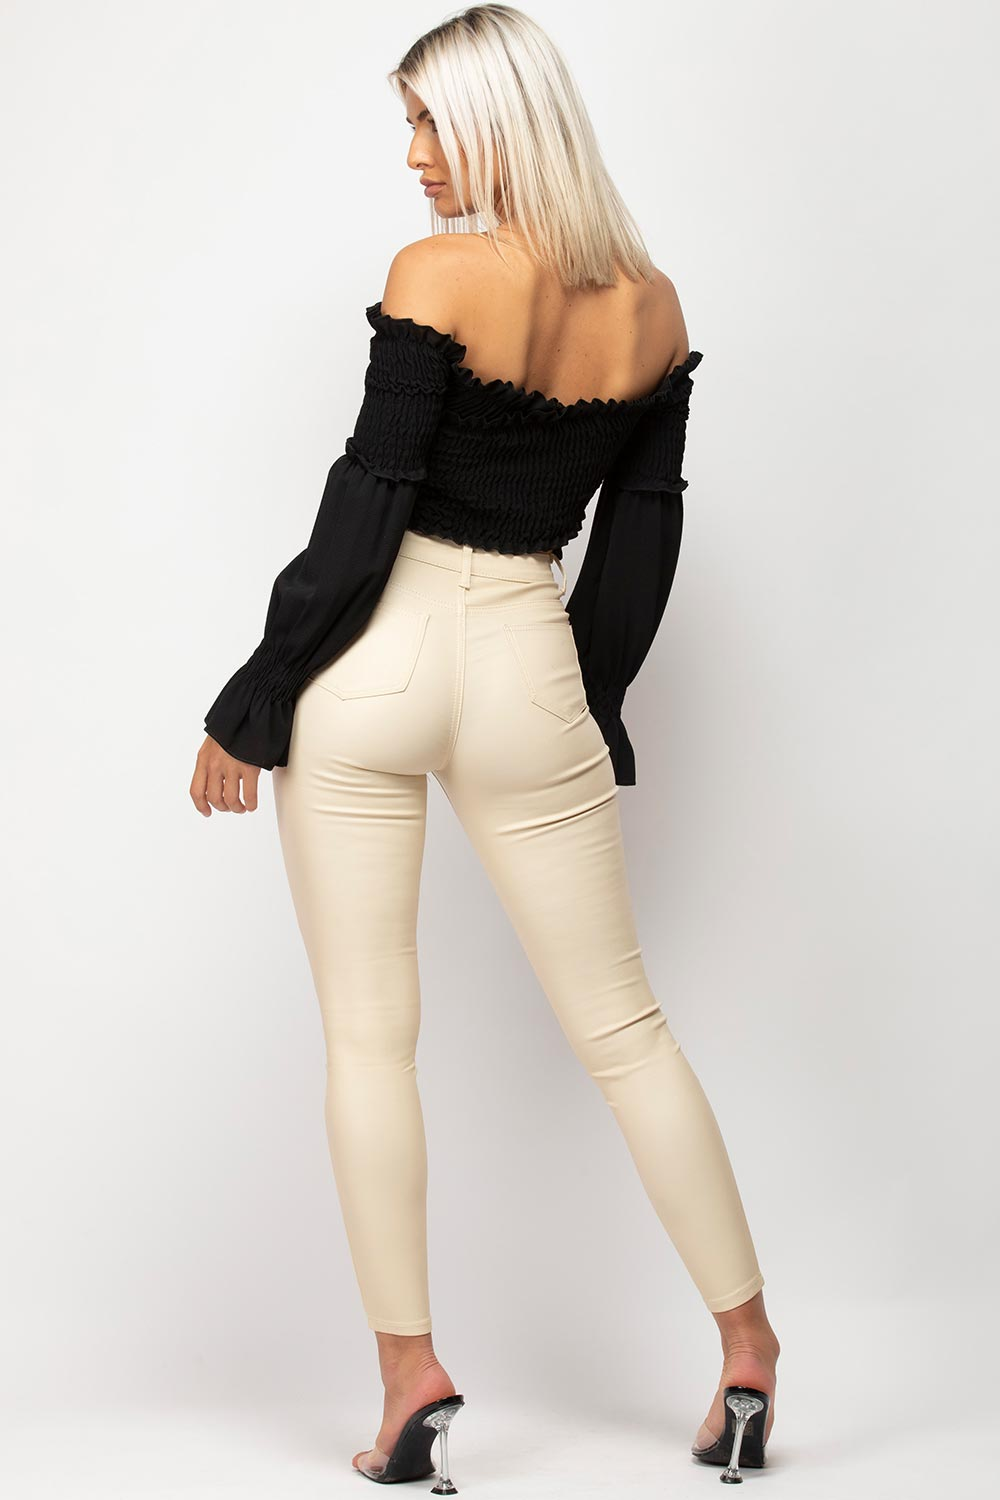 beige leather look jeans womens